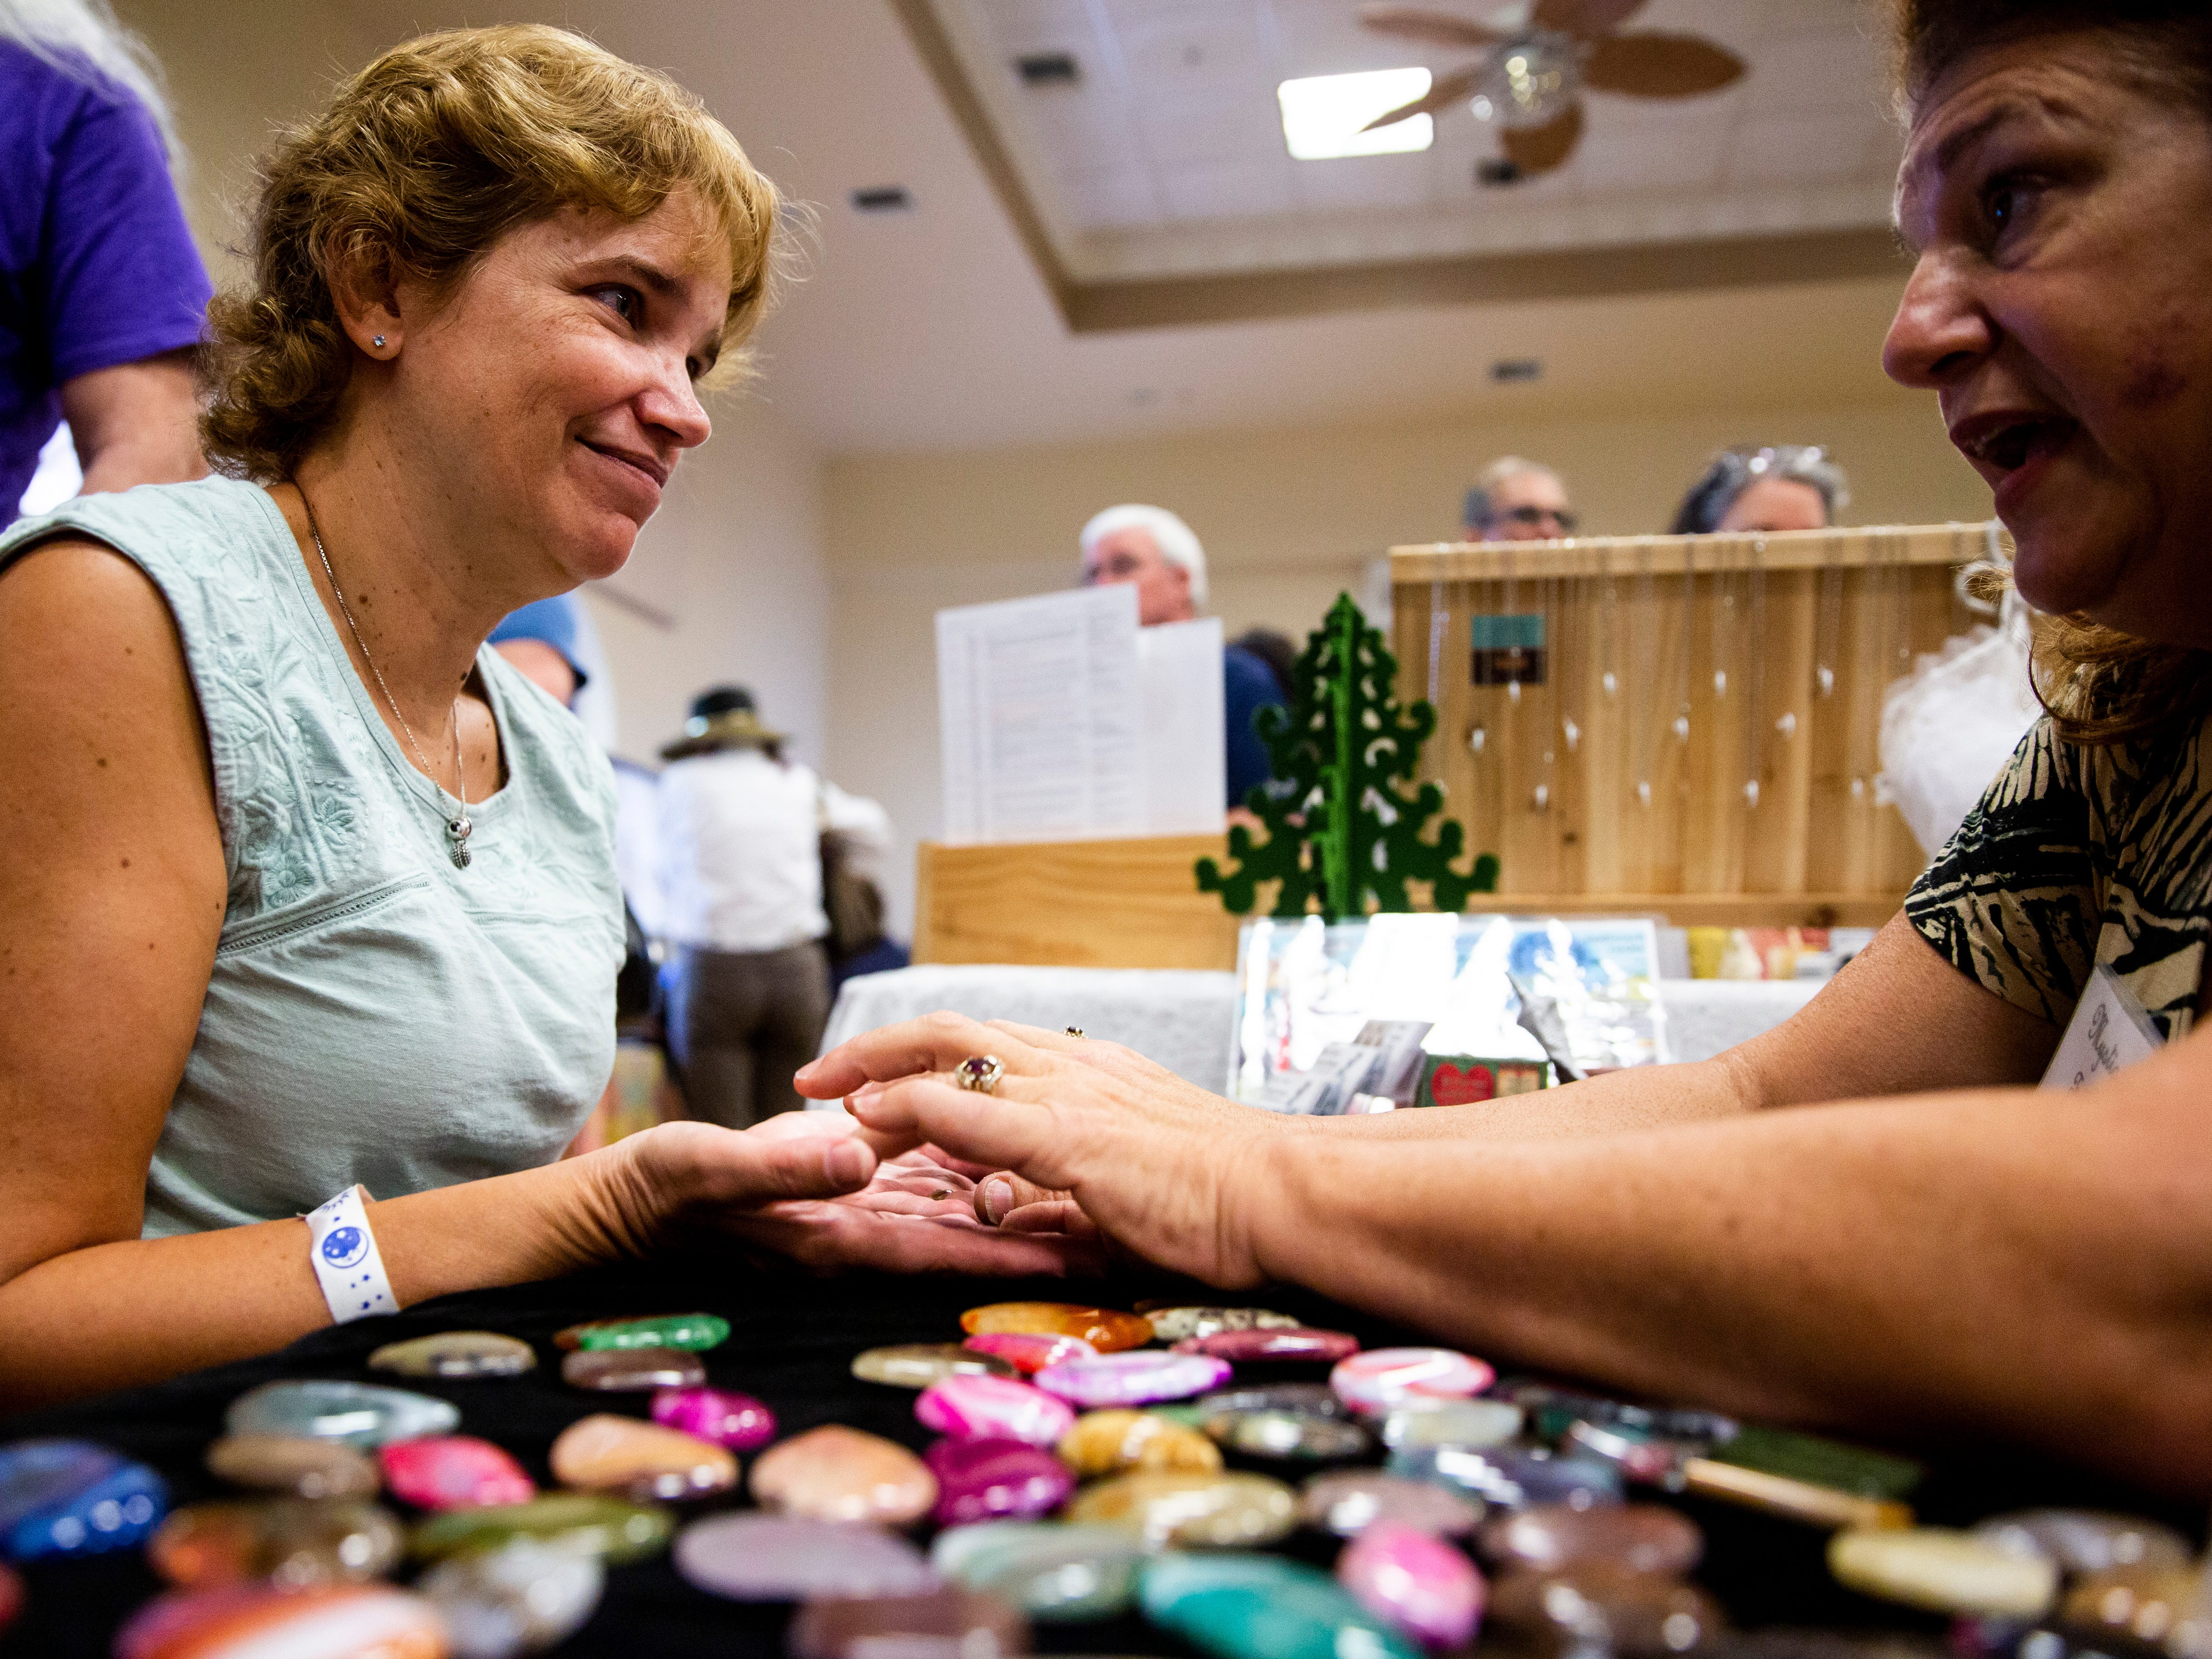 Christine Hall explains to Kimberly Baker the process of picking the right stone for her power shield during the Naples Mystic Faire on Saturday, November 24, 2018, at Études De Ballet & Co in Naples.